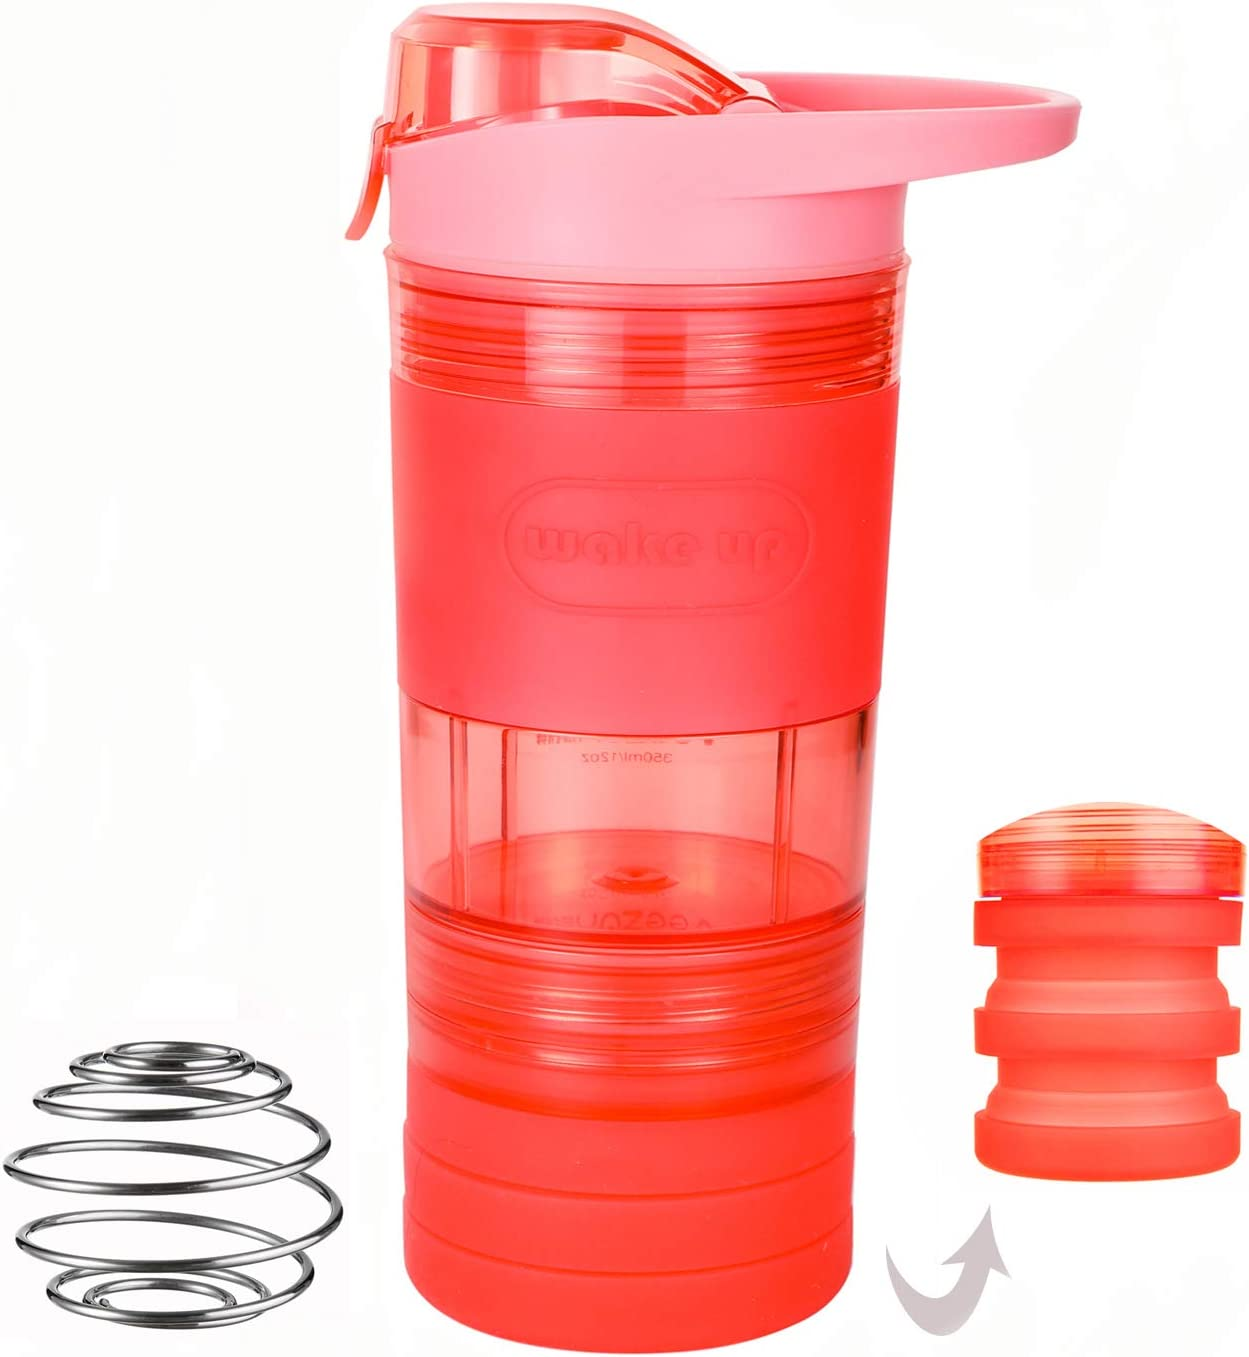 WATLIFE Shaker Bottle Protein Mixer 12oz with Mixer Ball Collapsible Rubber Storage Box Blender BPA Free Leakproof for Workout Gym Office (Pink)